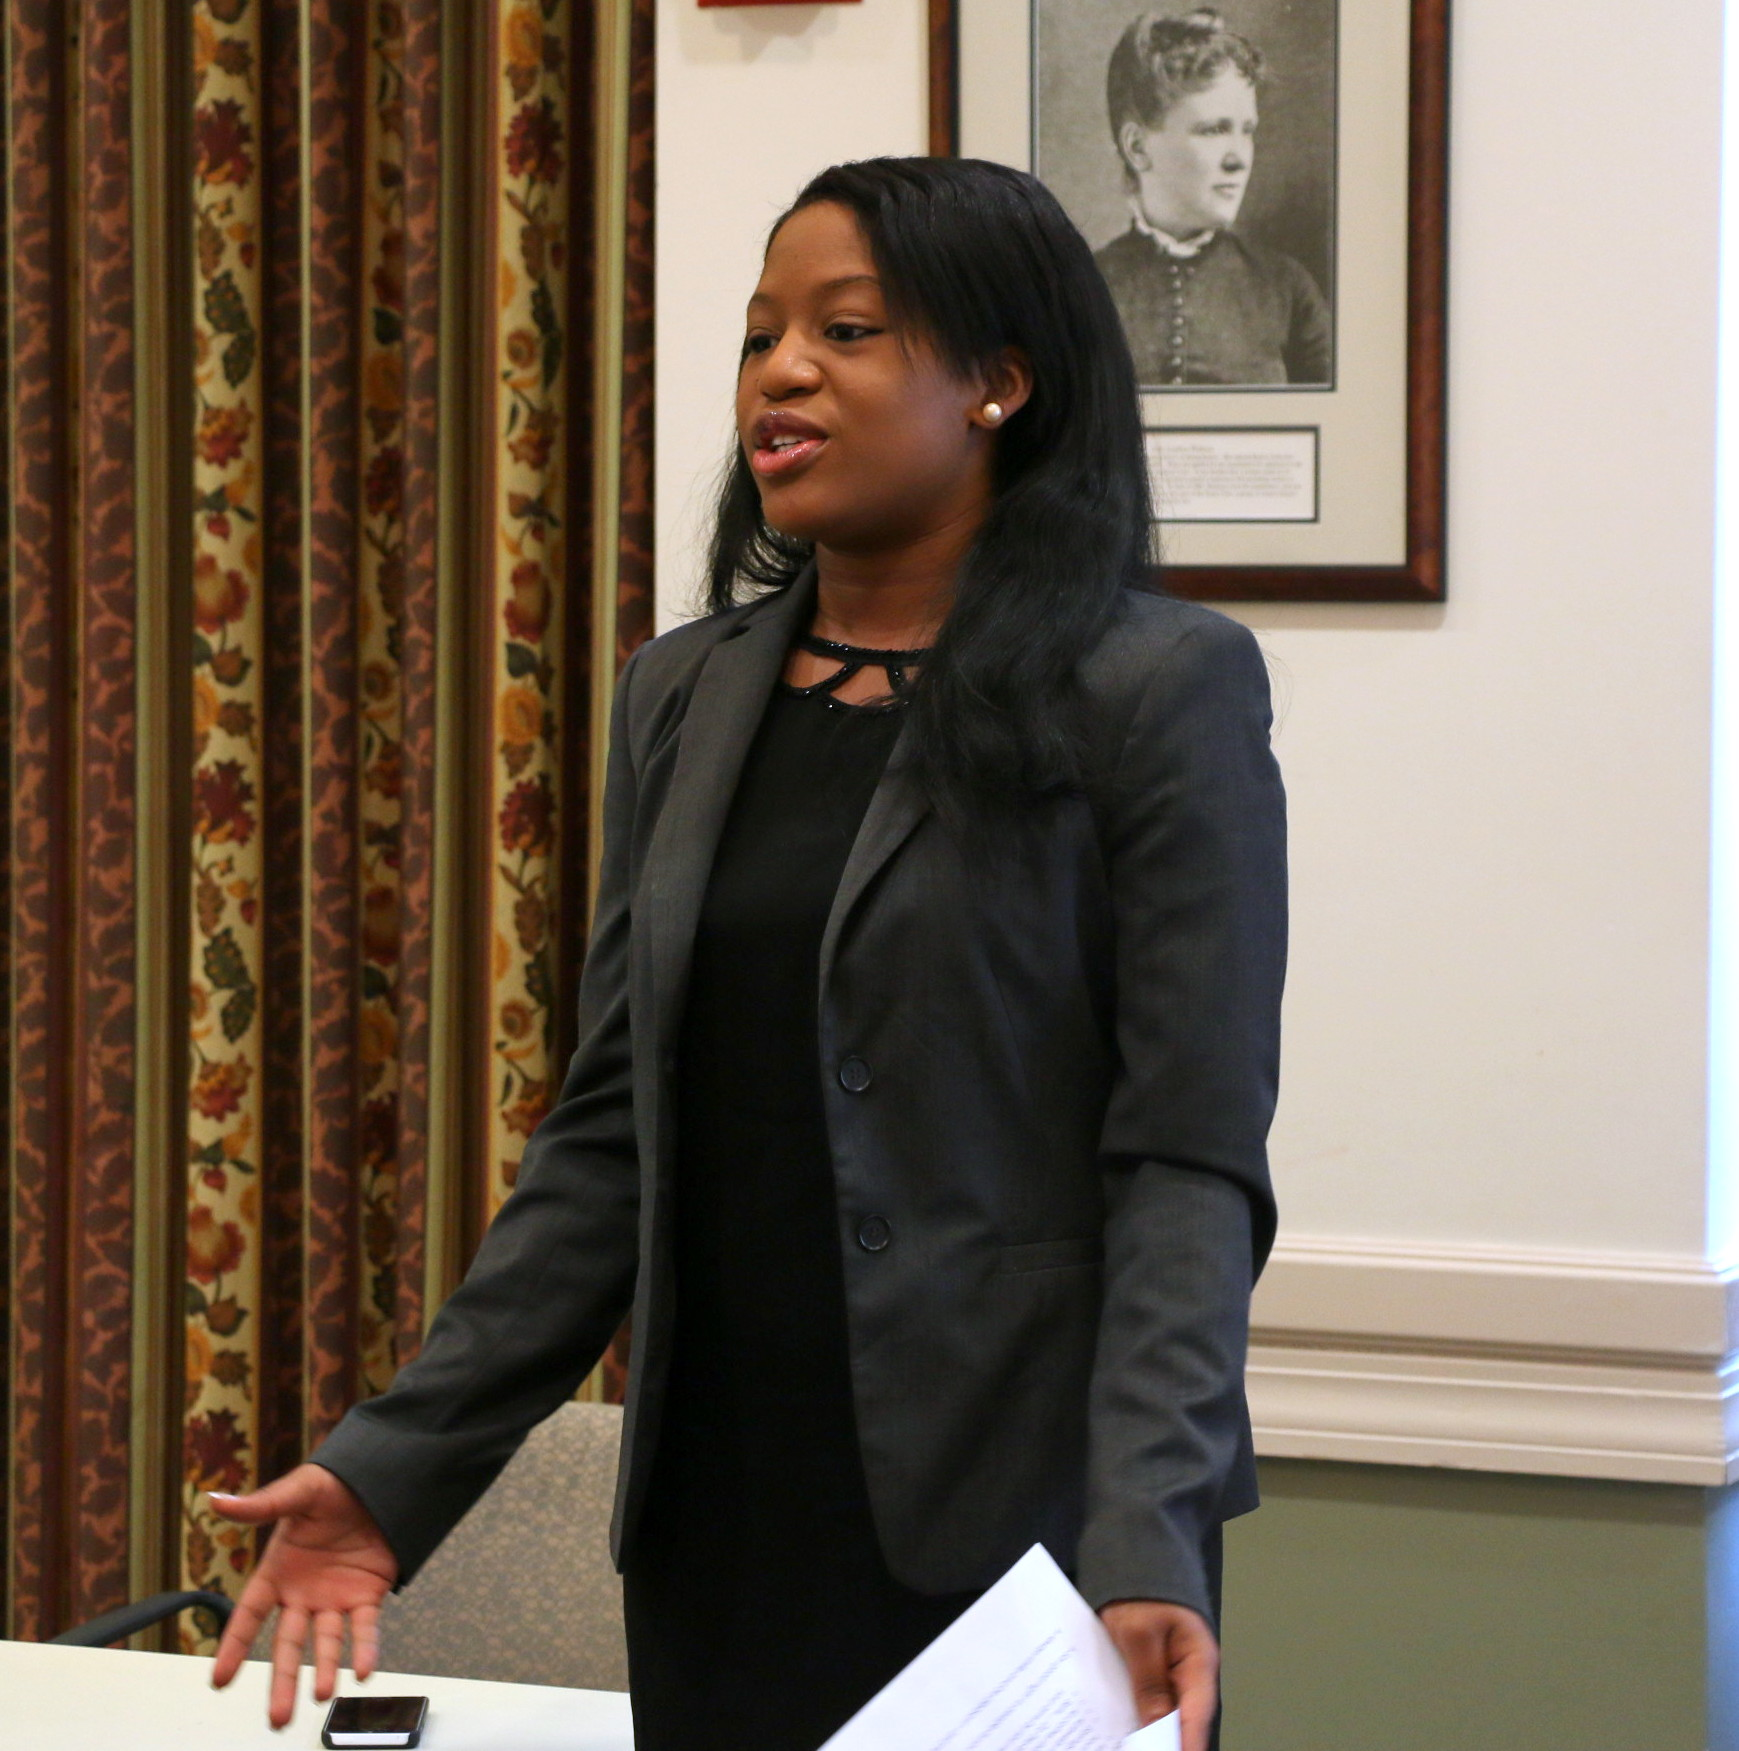 Emmanuelle Renelique (WilmerHale) participated in the BBA Summer Jobs Program when she was in high school and now works at WilmerHale. She shared her own experience with the students and explained how this job was the first step in building their future careers.